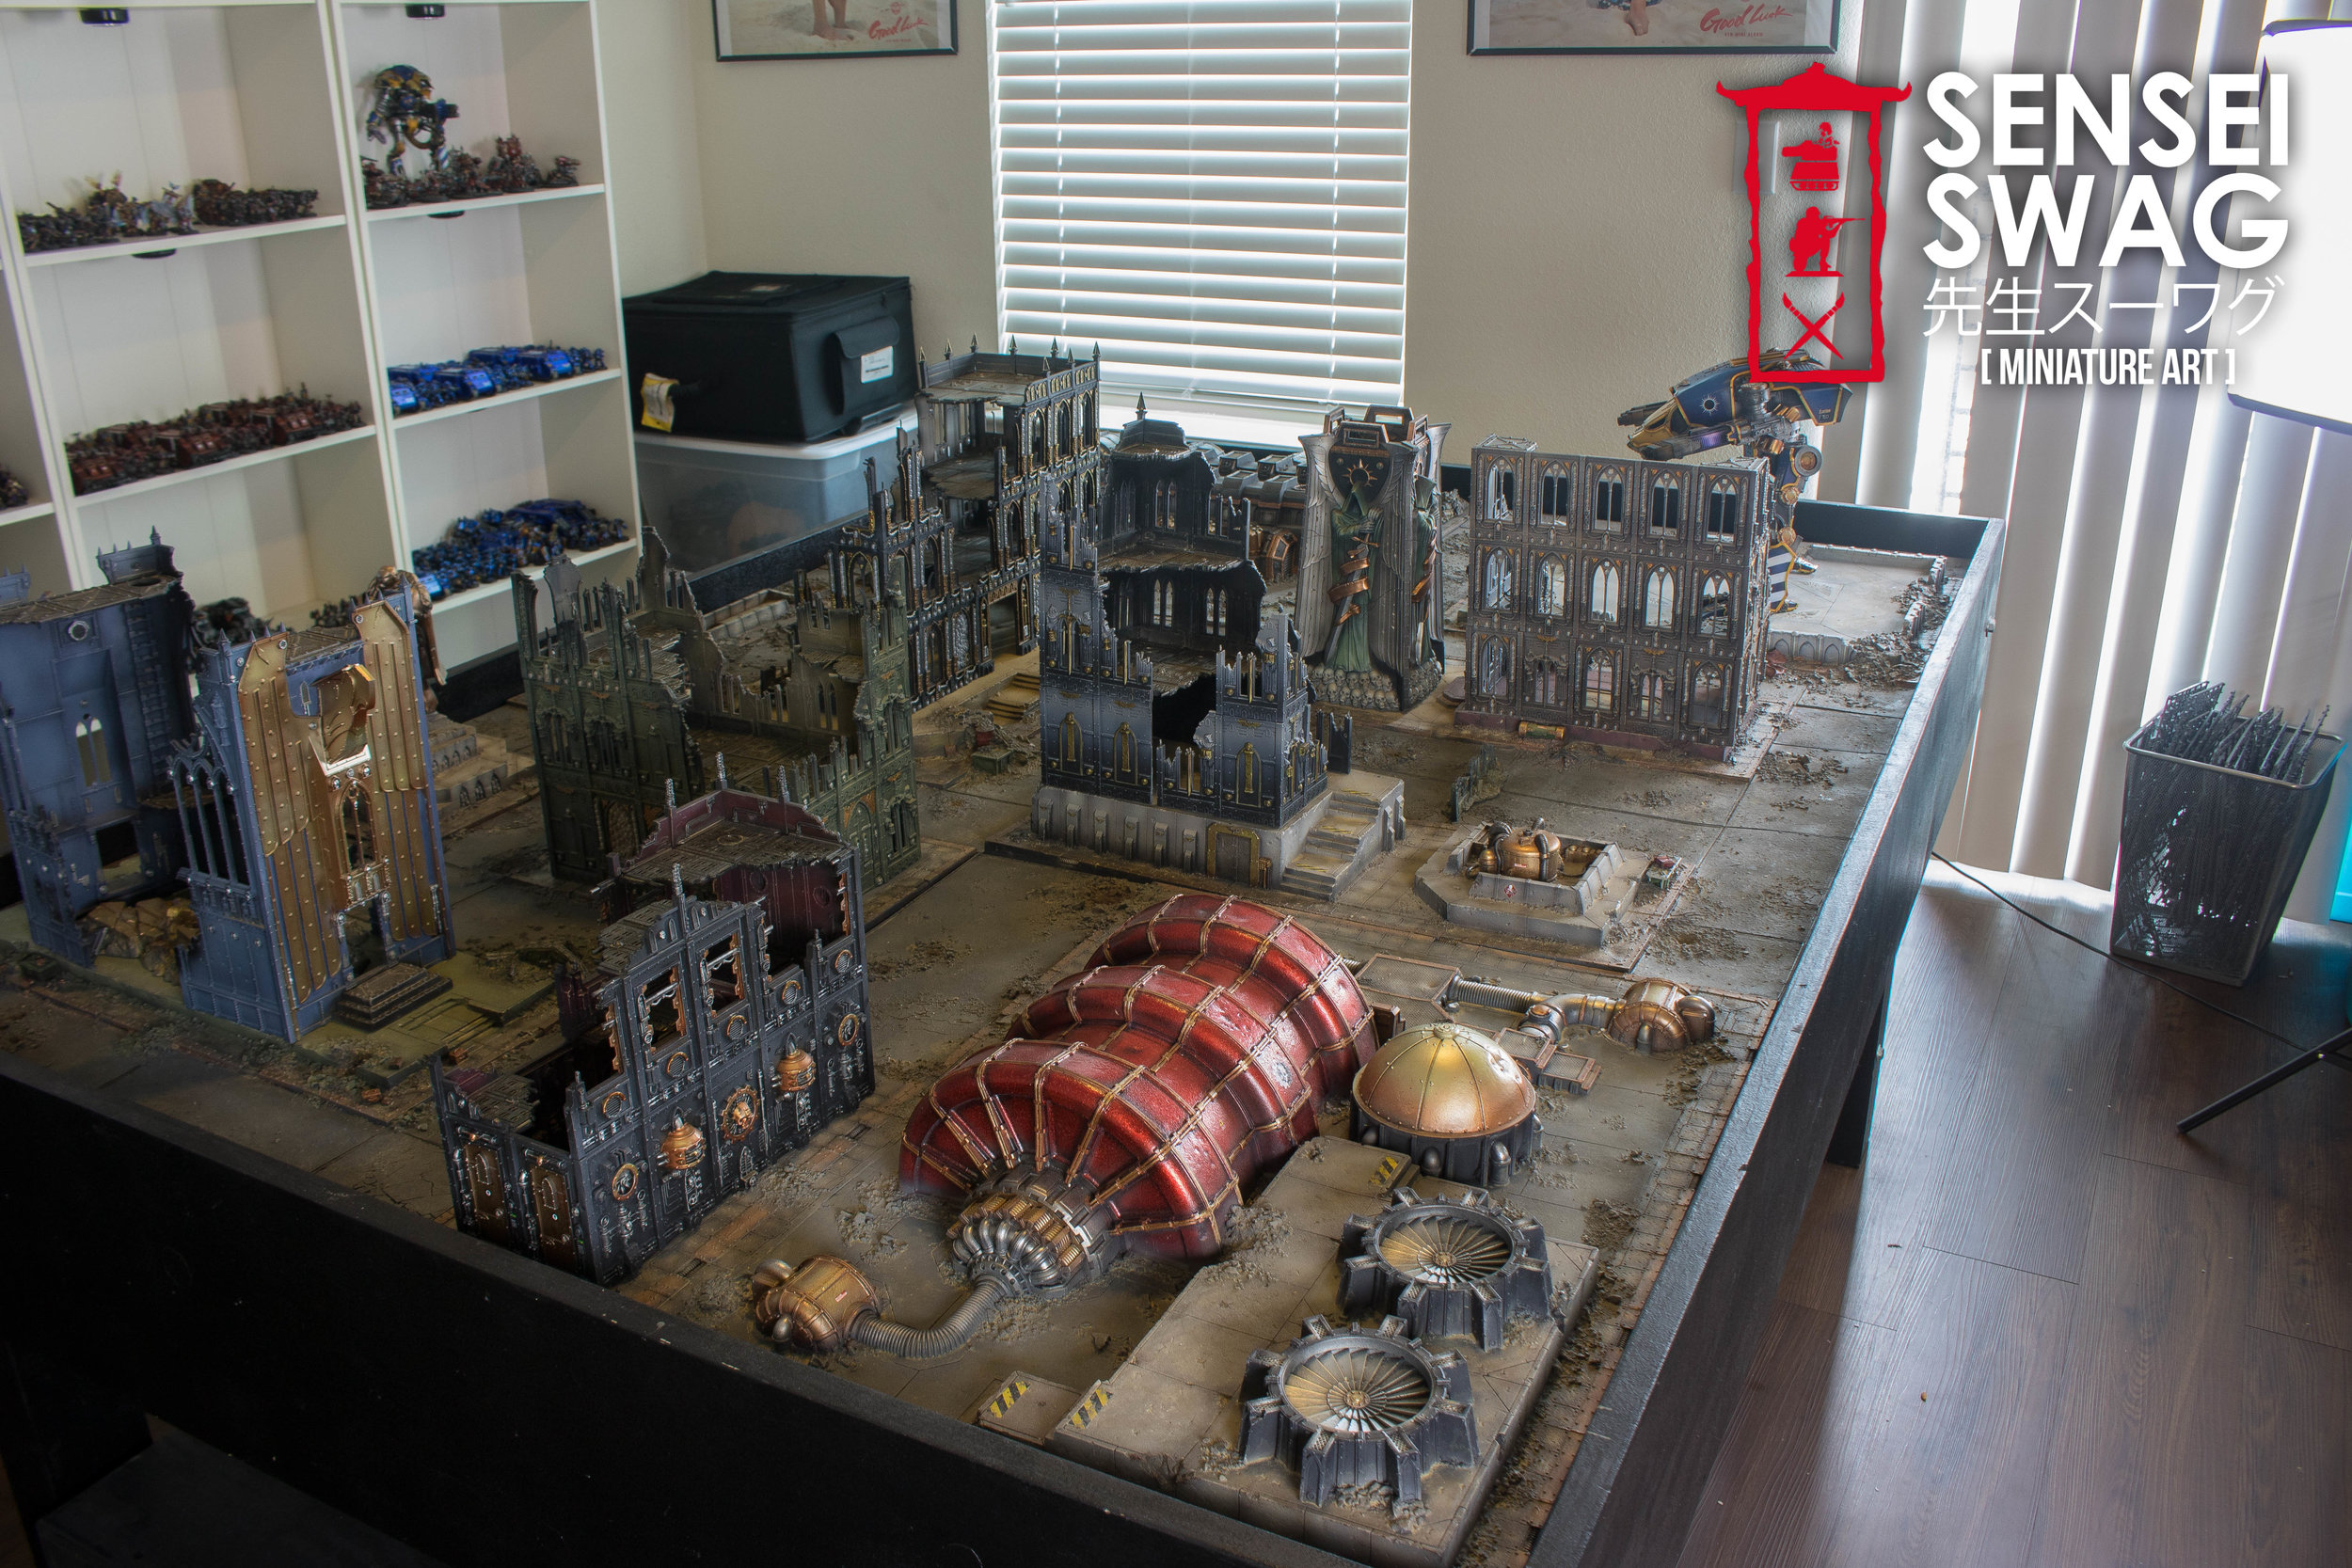 Warhammer 40k Cityfight Apocalypse Industrial Imperial Sector Forgeworld Gametable-3.jpg